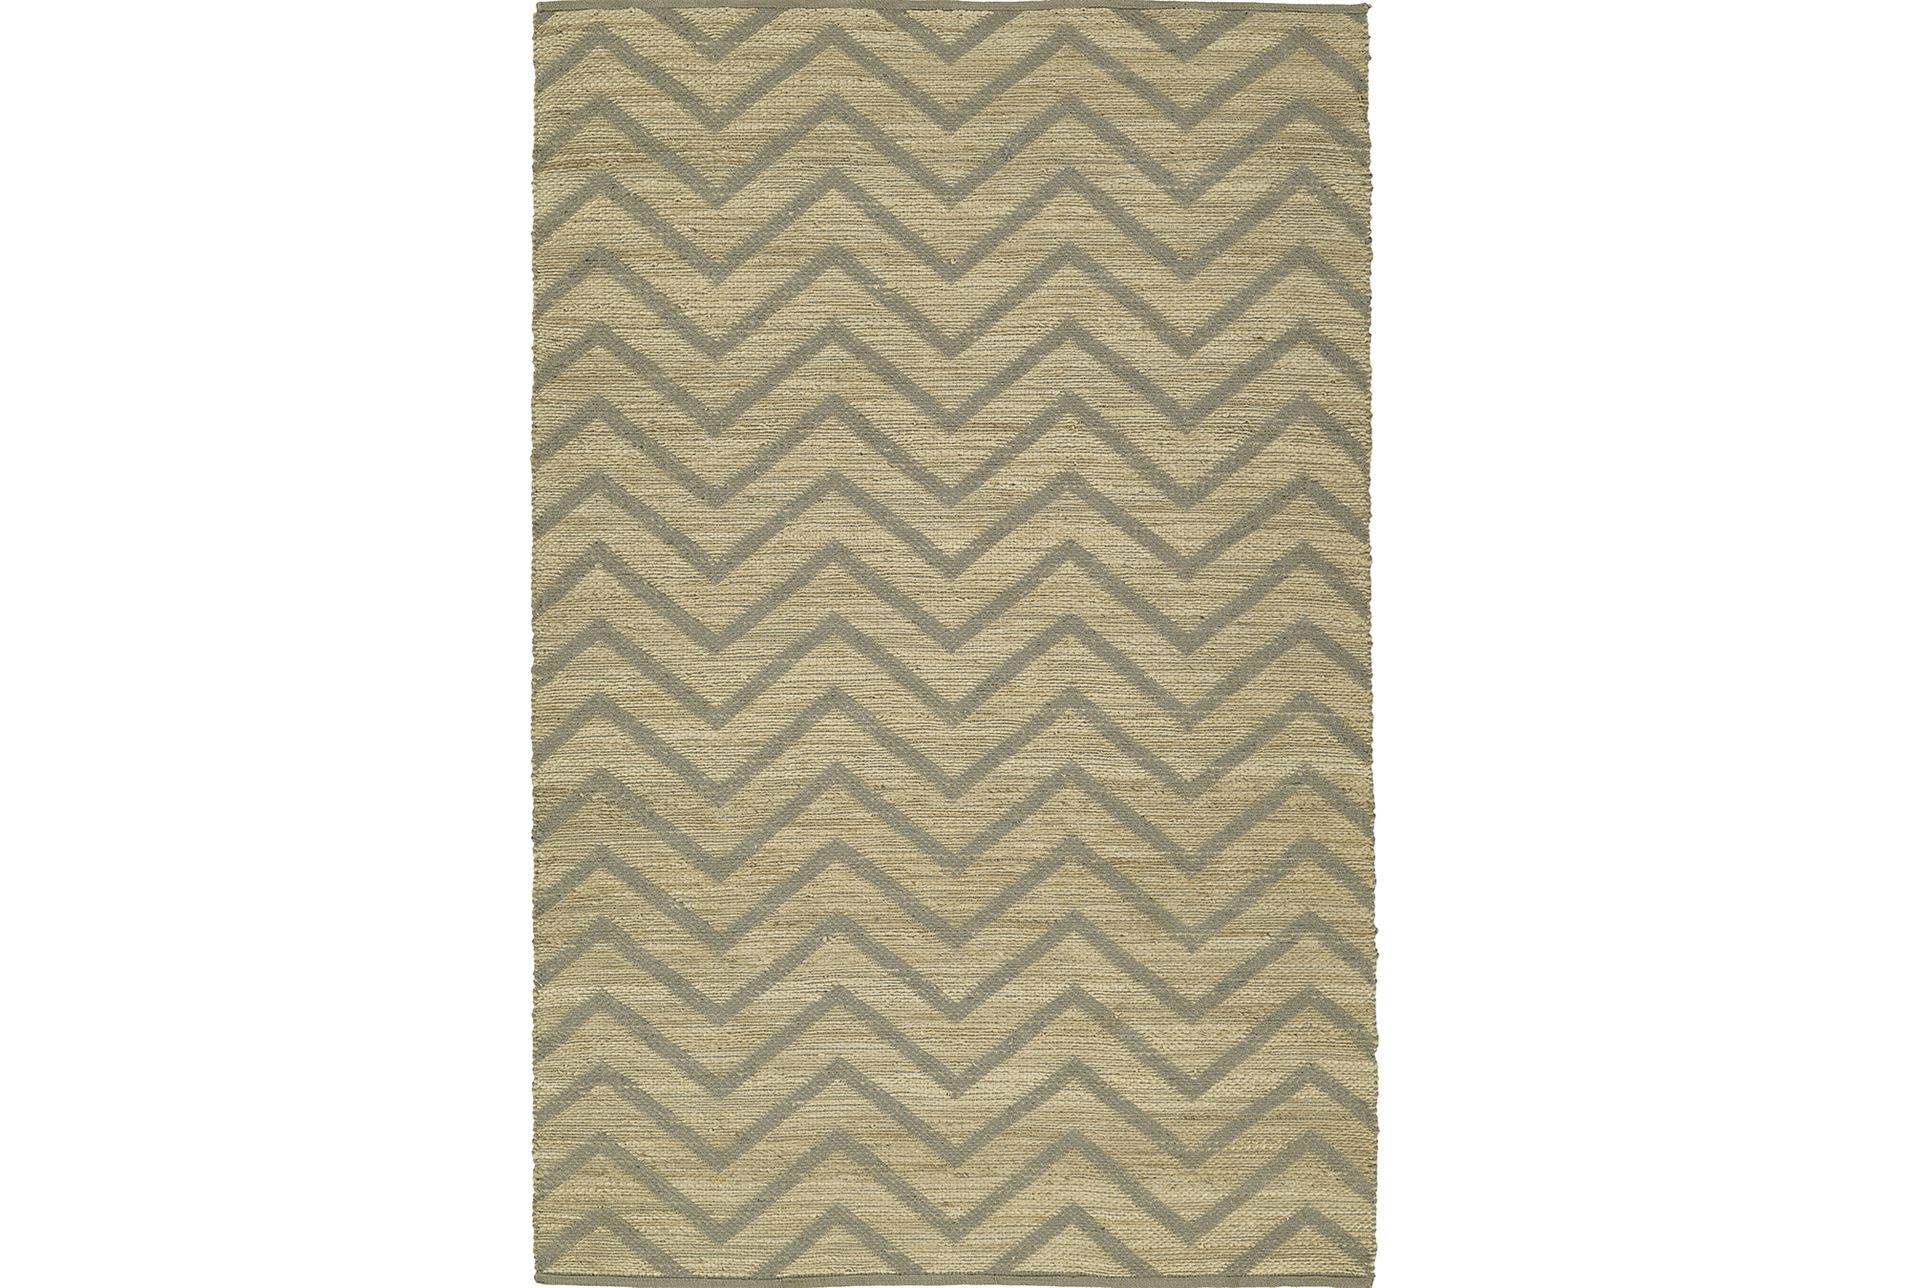 96x120 rug cadence jute grey living spaces for Living spaces rugs